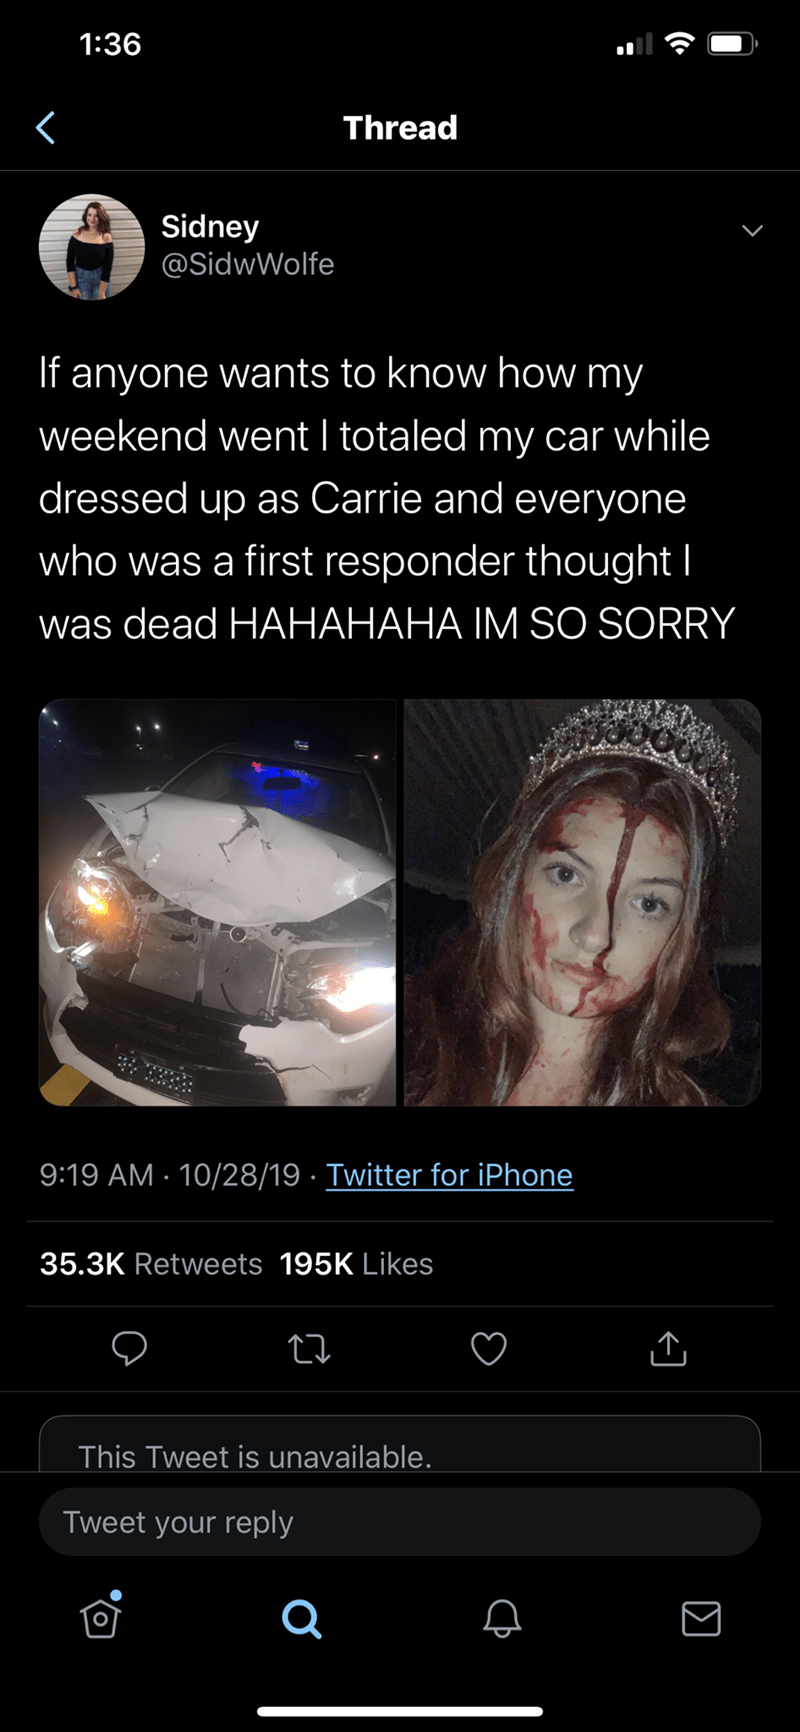 Text - 1:36 Thread Sidney @SidwWolfe If anyone wants to know how my weekend went I totaled my car while dressed up as Carrie and everyone who was a first responder thought I was dead HAHAHAHA IM SO SORRY 9:19 AM 10/28/19 Twitter for iPhone 35.3K Retweets 195K Likes This Tweet is unavailable. Tweet your reply (